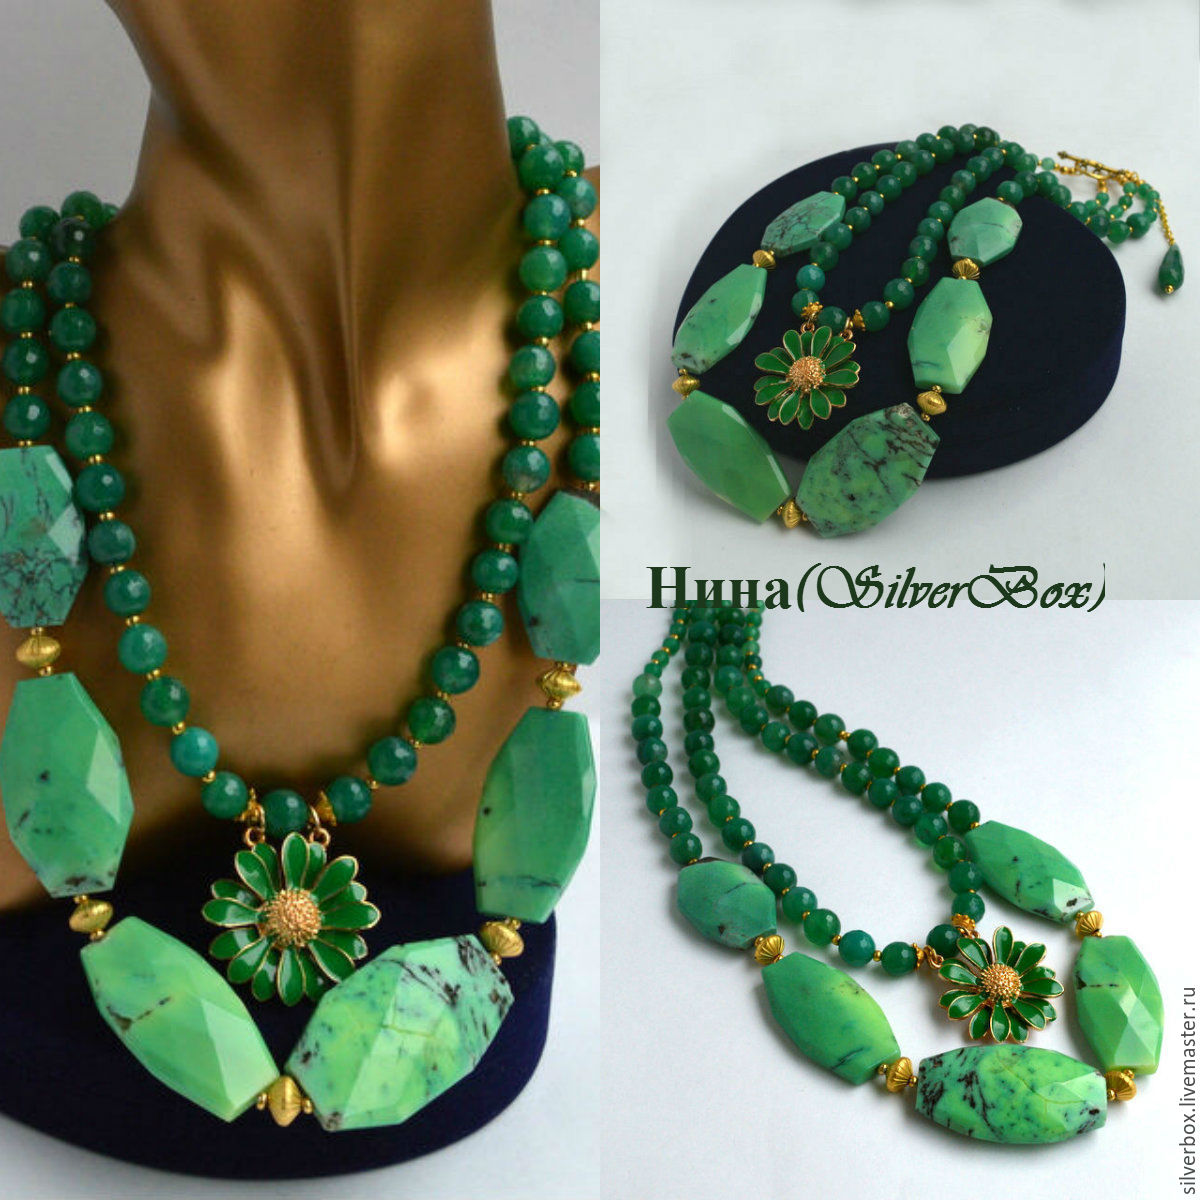 chrysoprase corfu internationales accueil collier necklace en amours